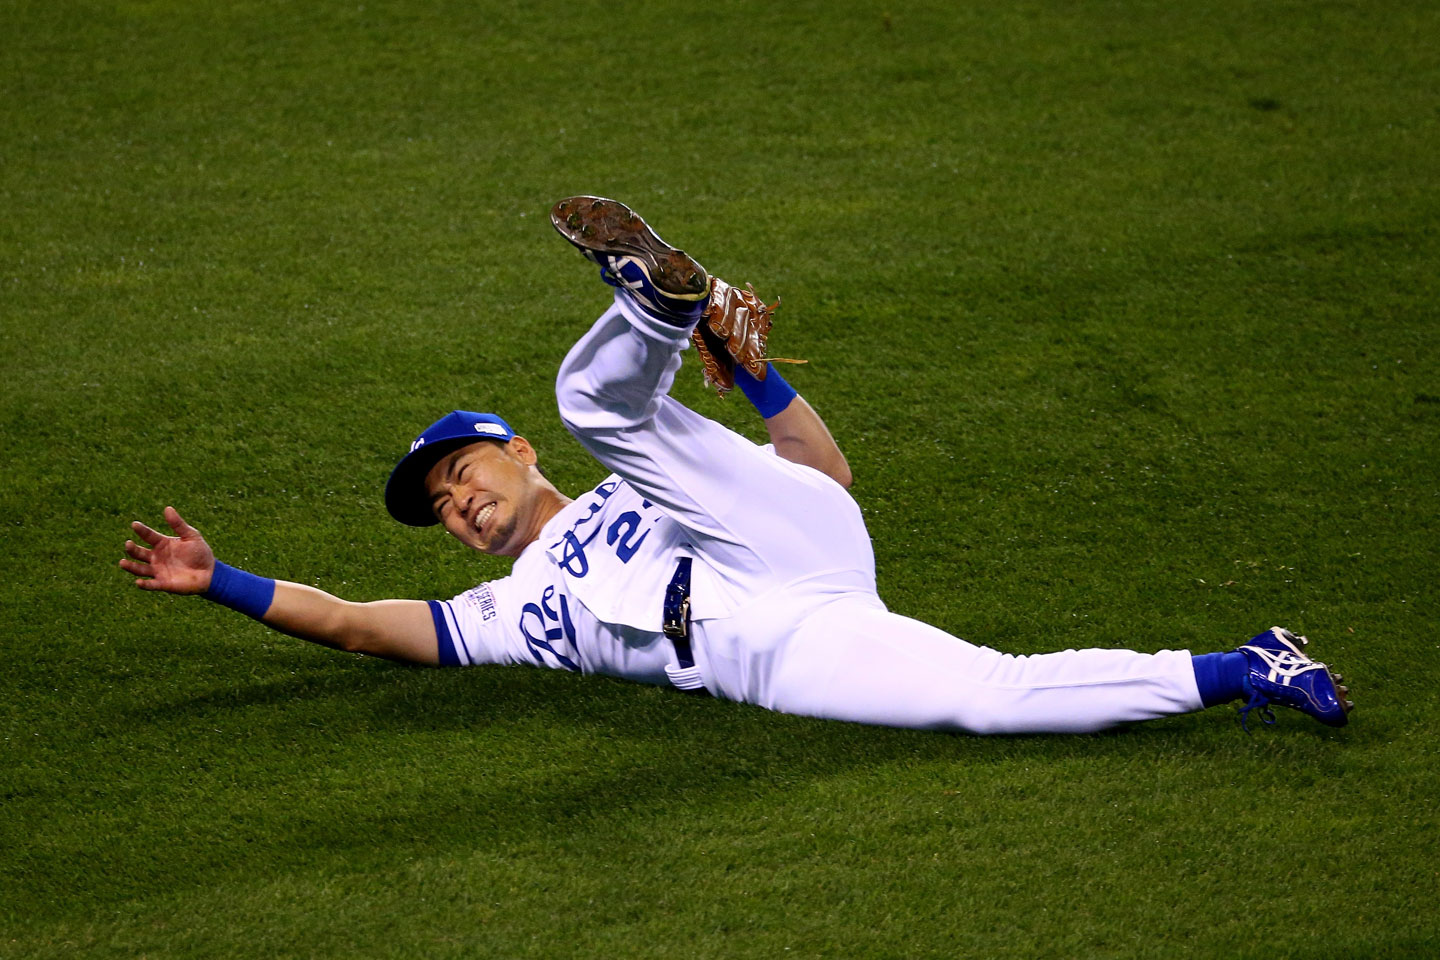 Royals right fielder Nori Aoki sprawls helplessly after misplaying a blistering one-hop drive in the gap by the Giants' Joe Panik. Gregor Blanco scored on the play. Panik wound up on third with a triple and later scored on Pablo Sandoval's single. Giants 7, Royals 0. (Elsa/Getty Images)